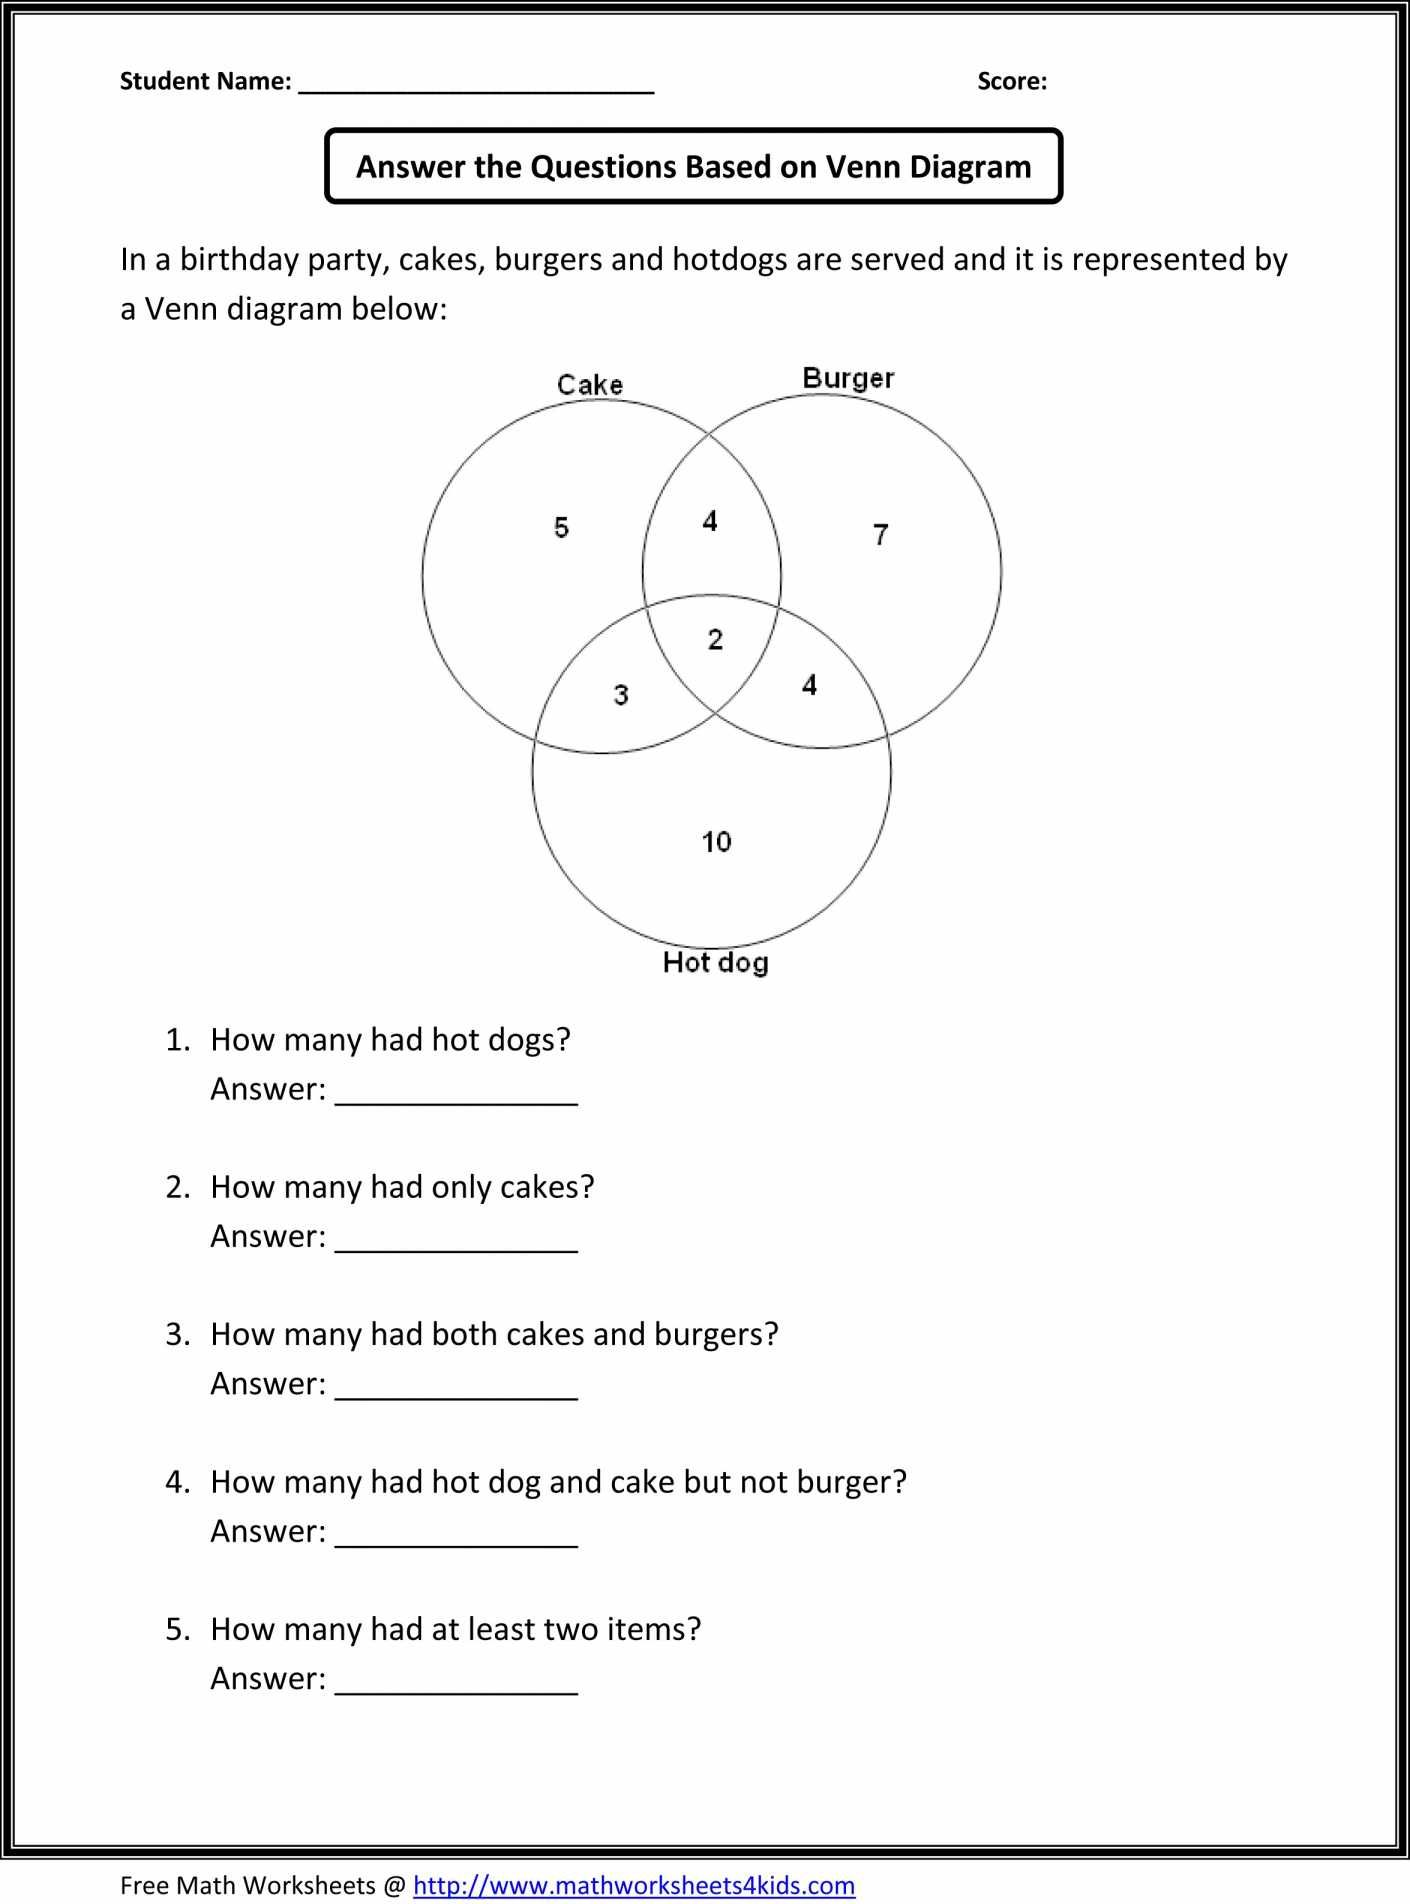 Venn Diagrams Worksheets With Answers